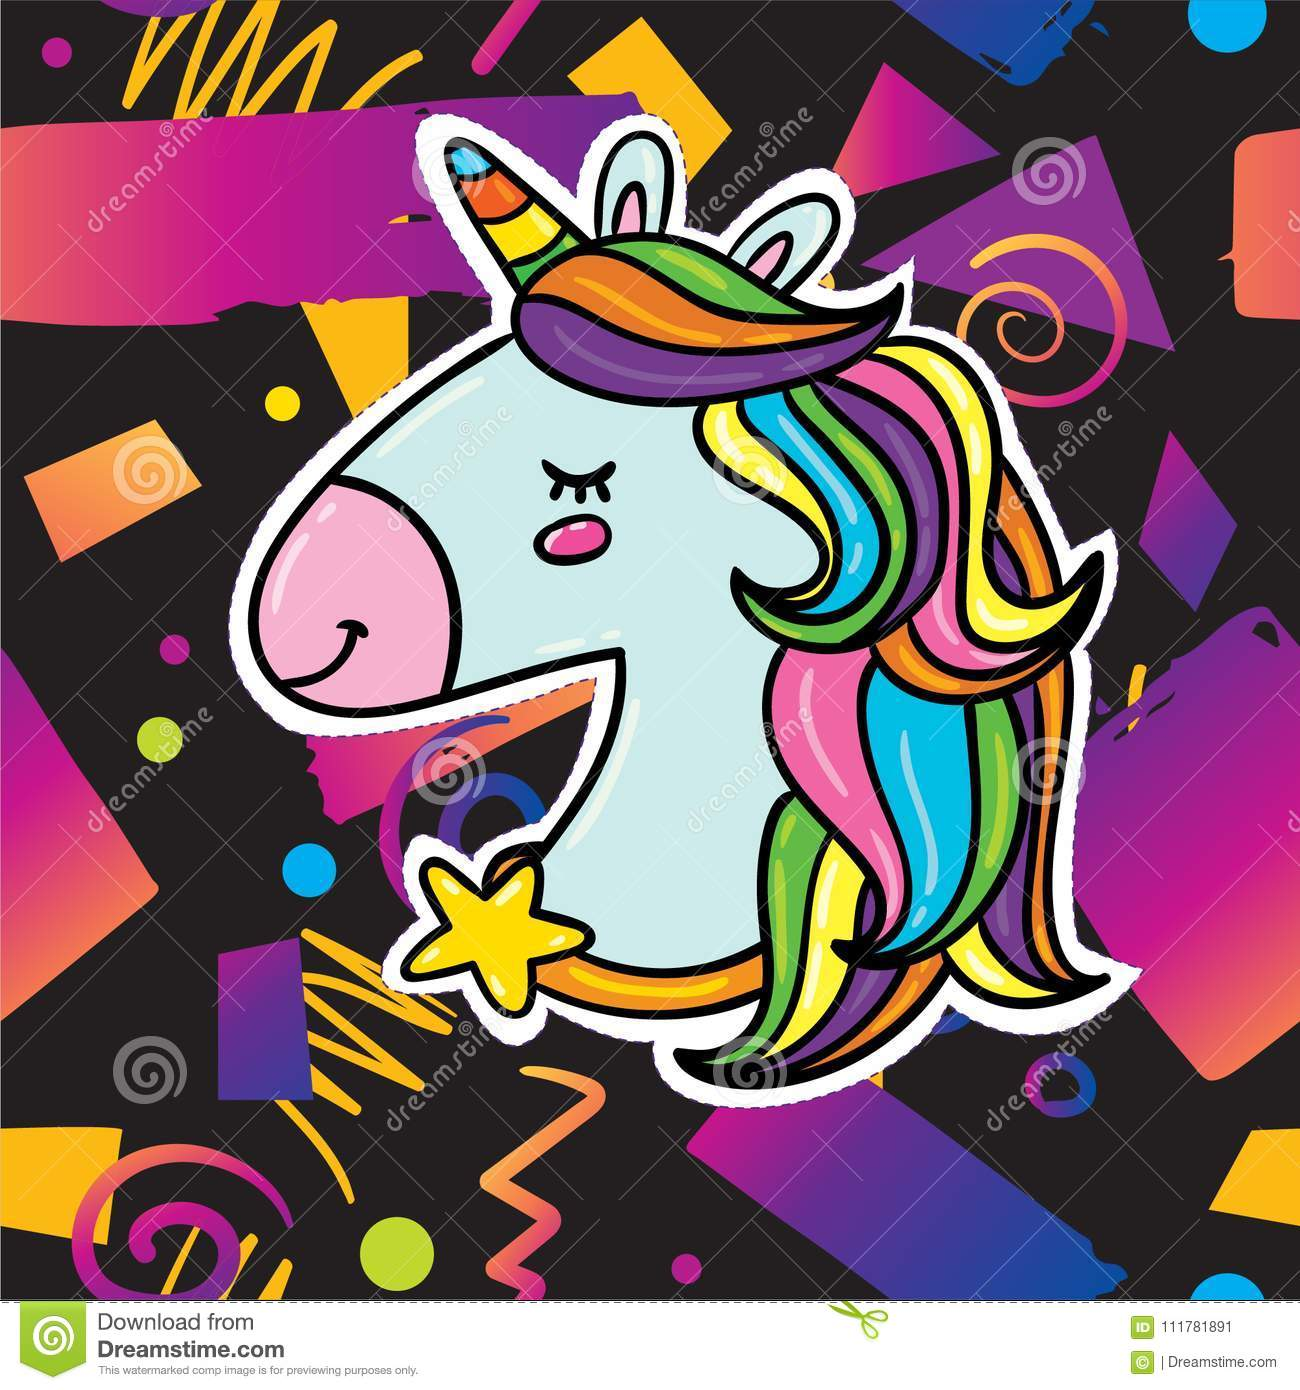 Trendy card design with unicorn